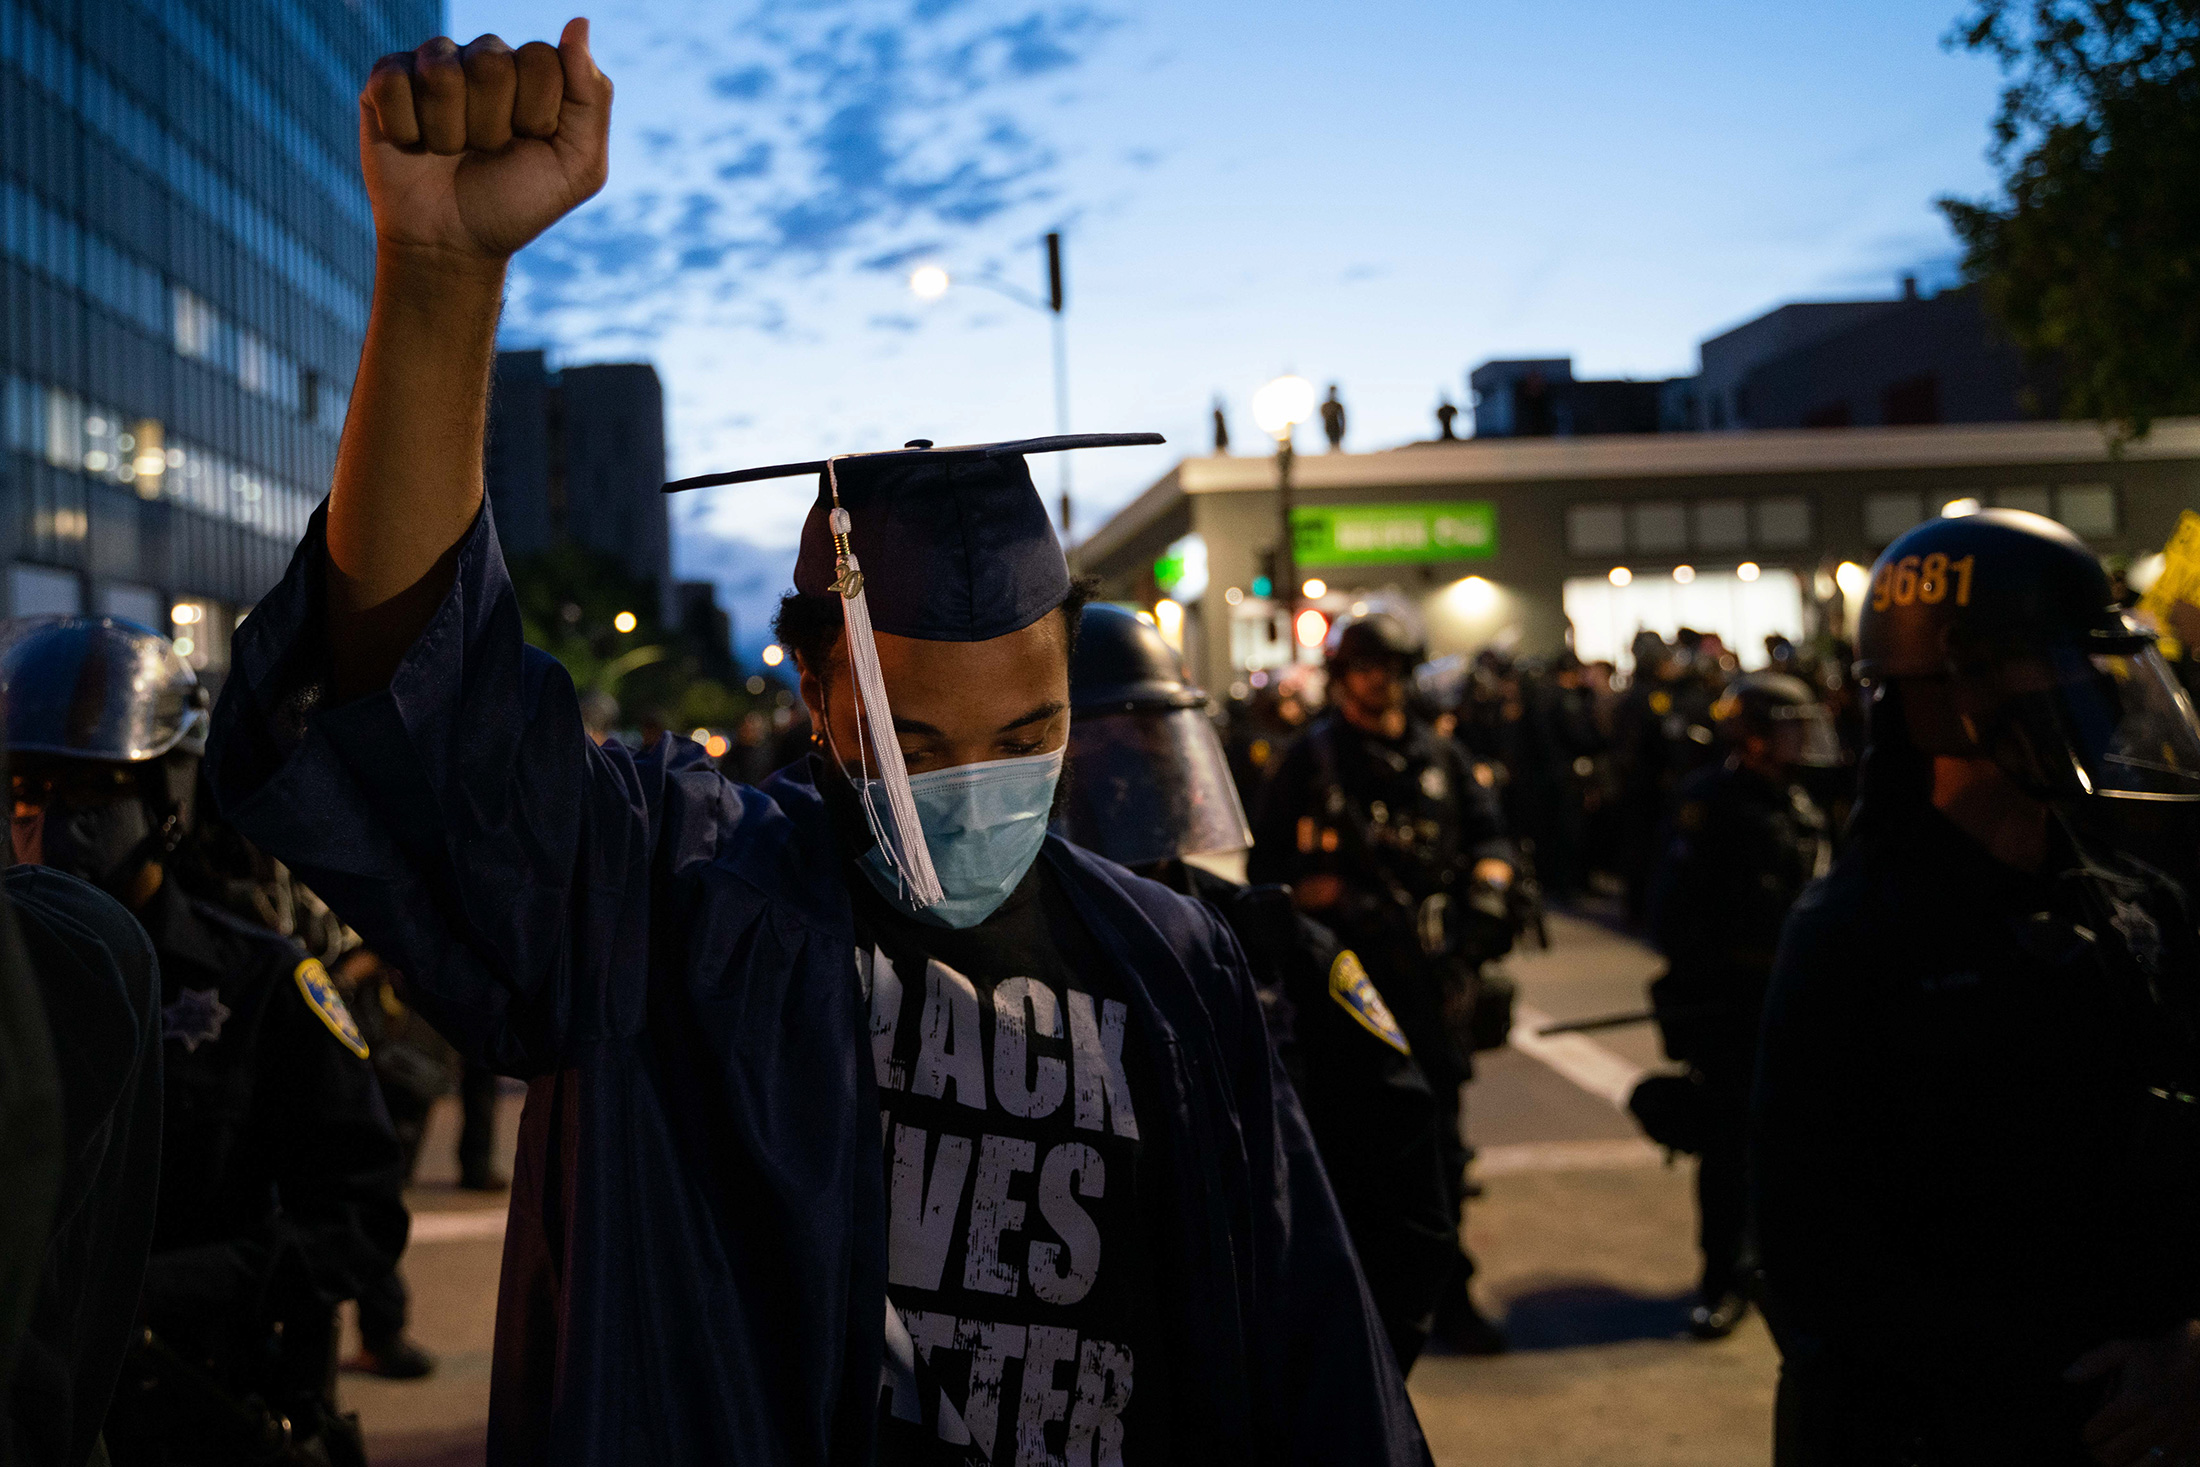 Vallejo resident Louis Michael, 22, raises his fist in solidarity after the death of George Floyd. Michael wears his graduation cap and gown during a protest on Friday, May 29 in Oakland, CA after receiving his bachelor's degree in communications from MidAmerica Nazarene University. PHOTO: SARAHBETH MANEY